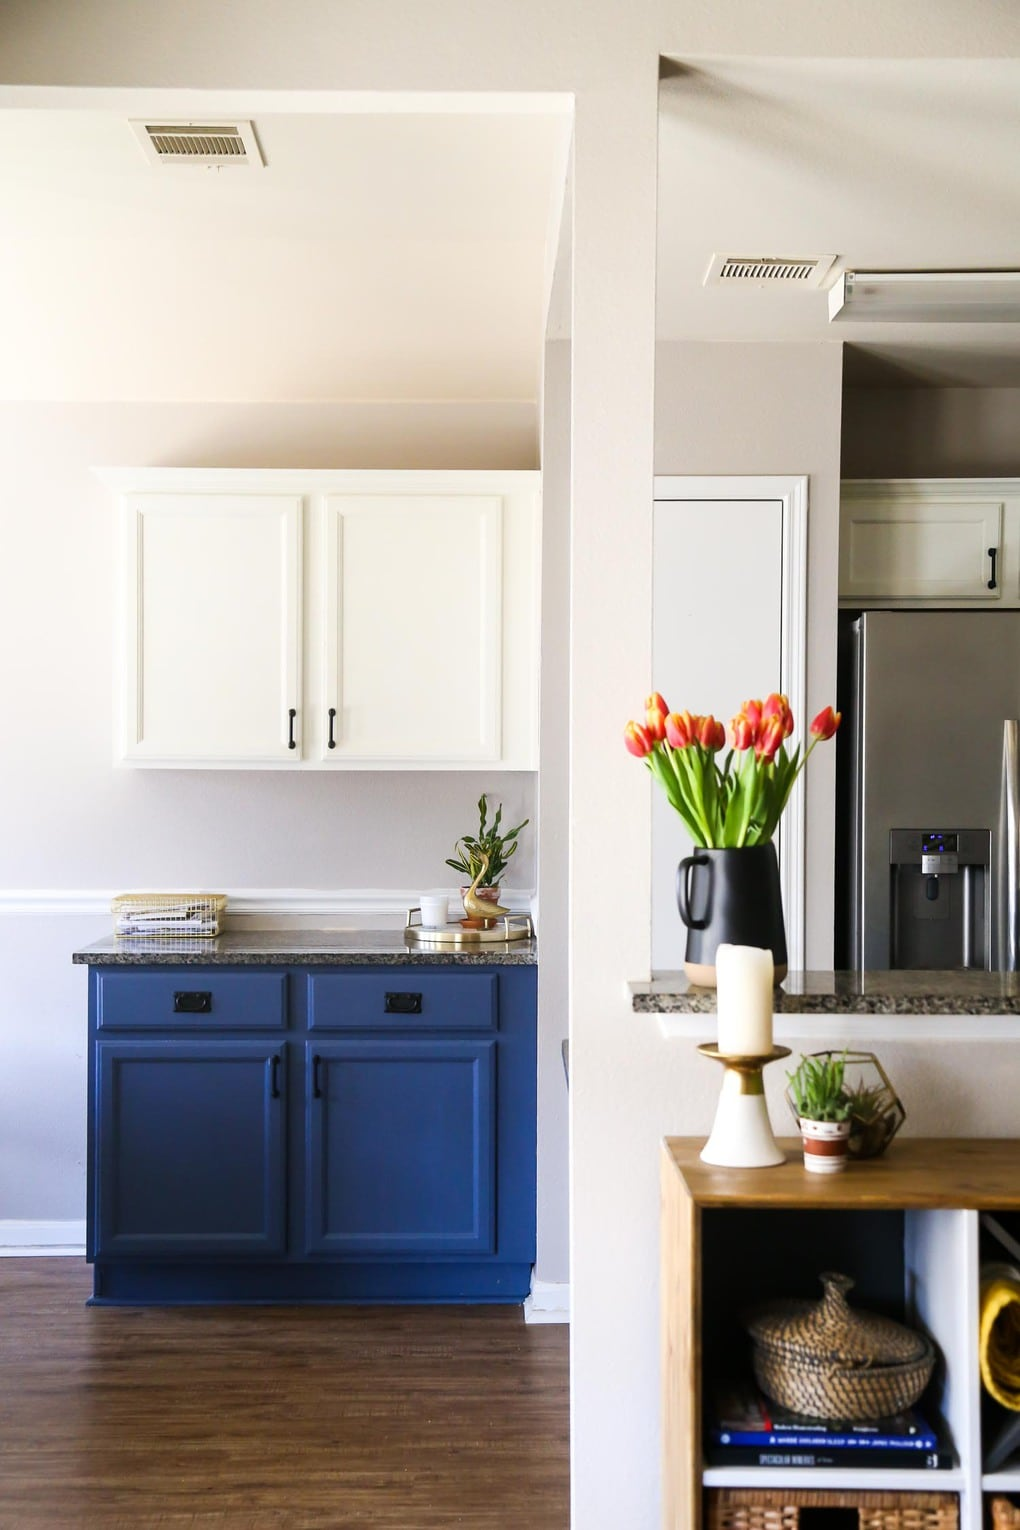 Blue and white kitchen - tips for selling a home and moving